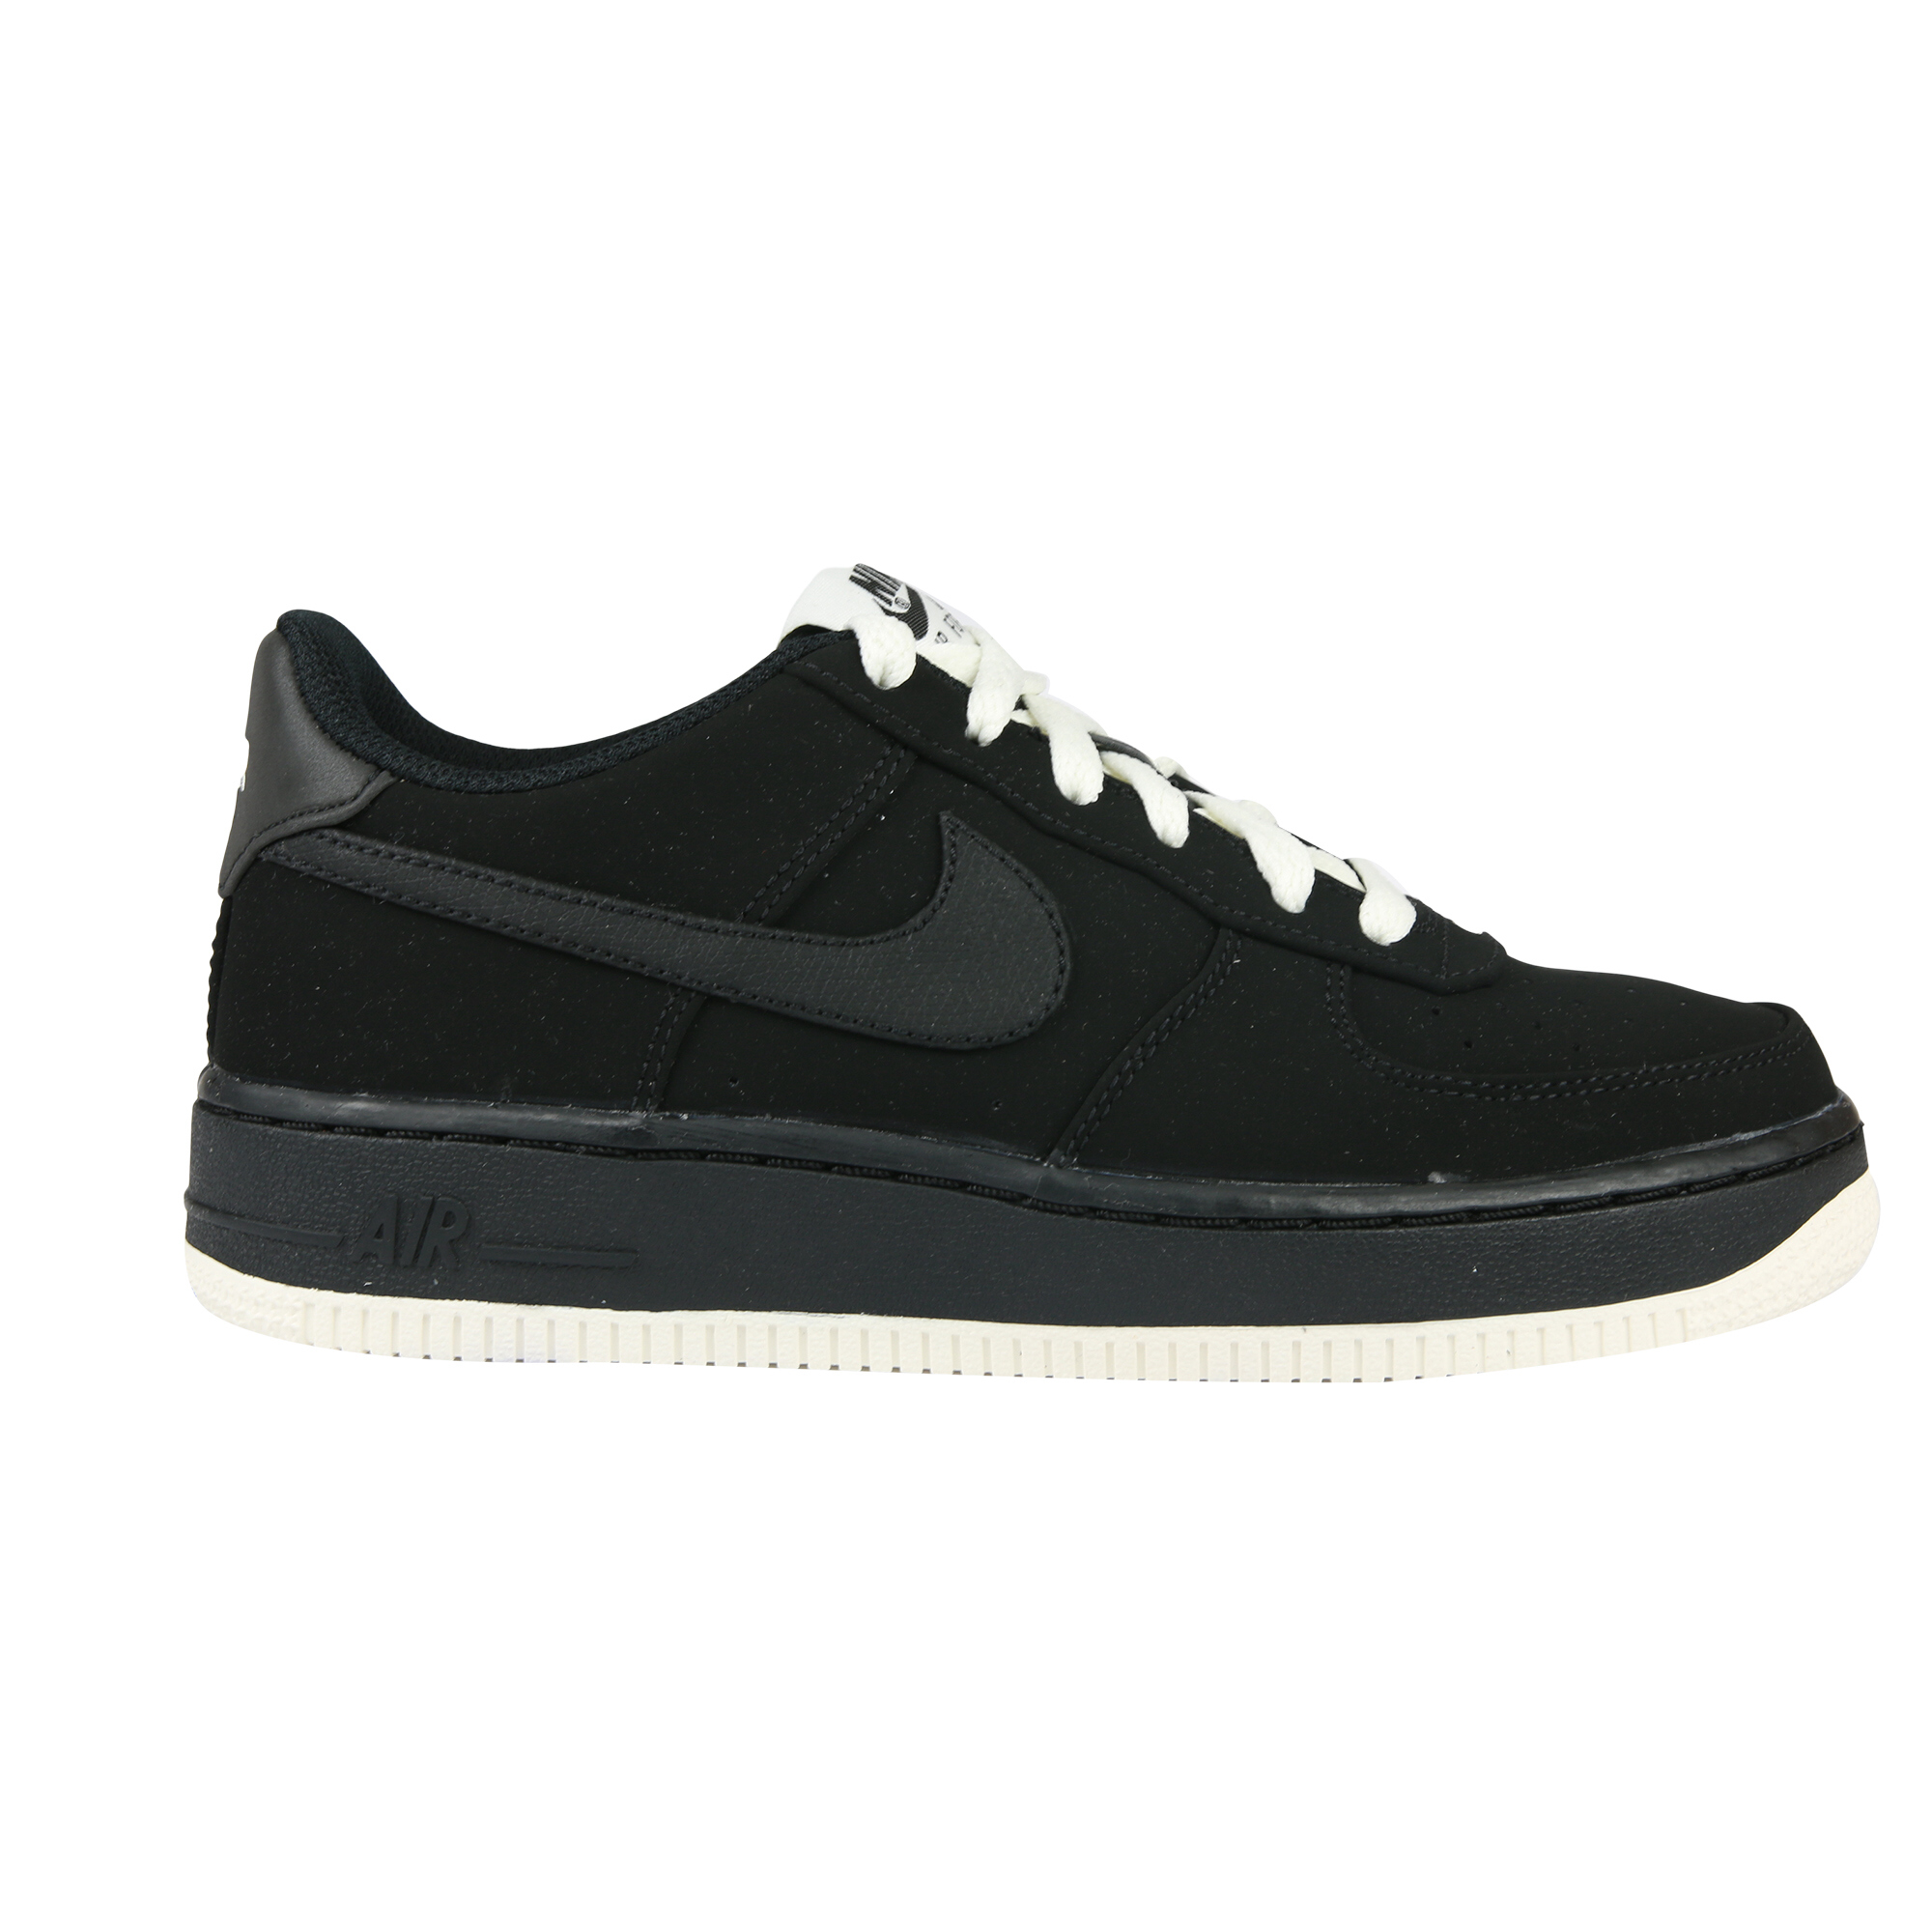 nike air force 1 gs schuhe sneaker turnschuhe jungen. Black Bedroom Furniture Sets. Home Design Ideas